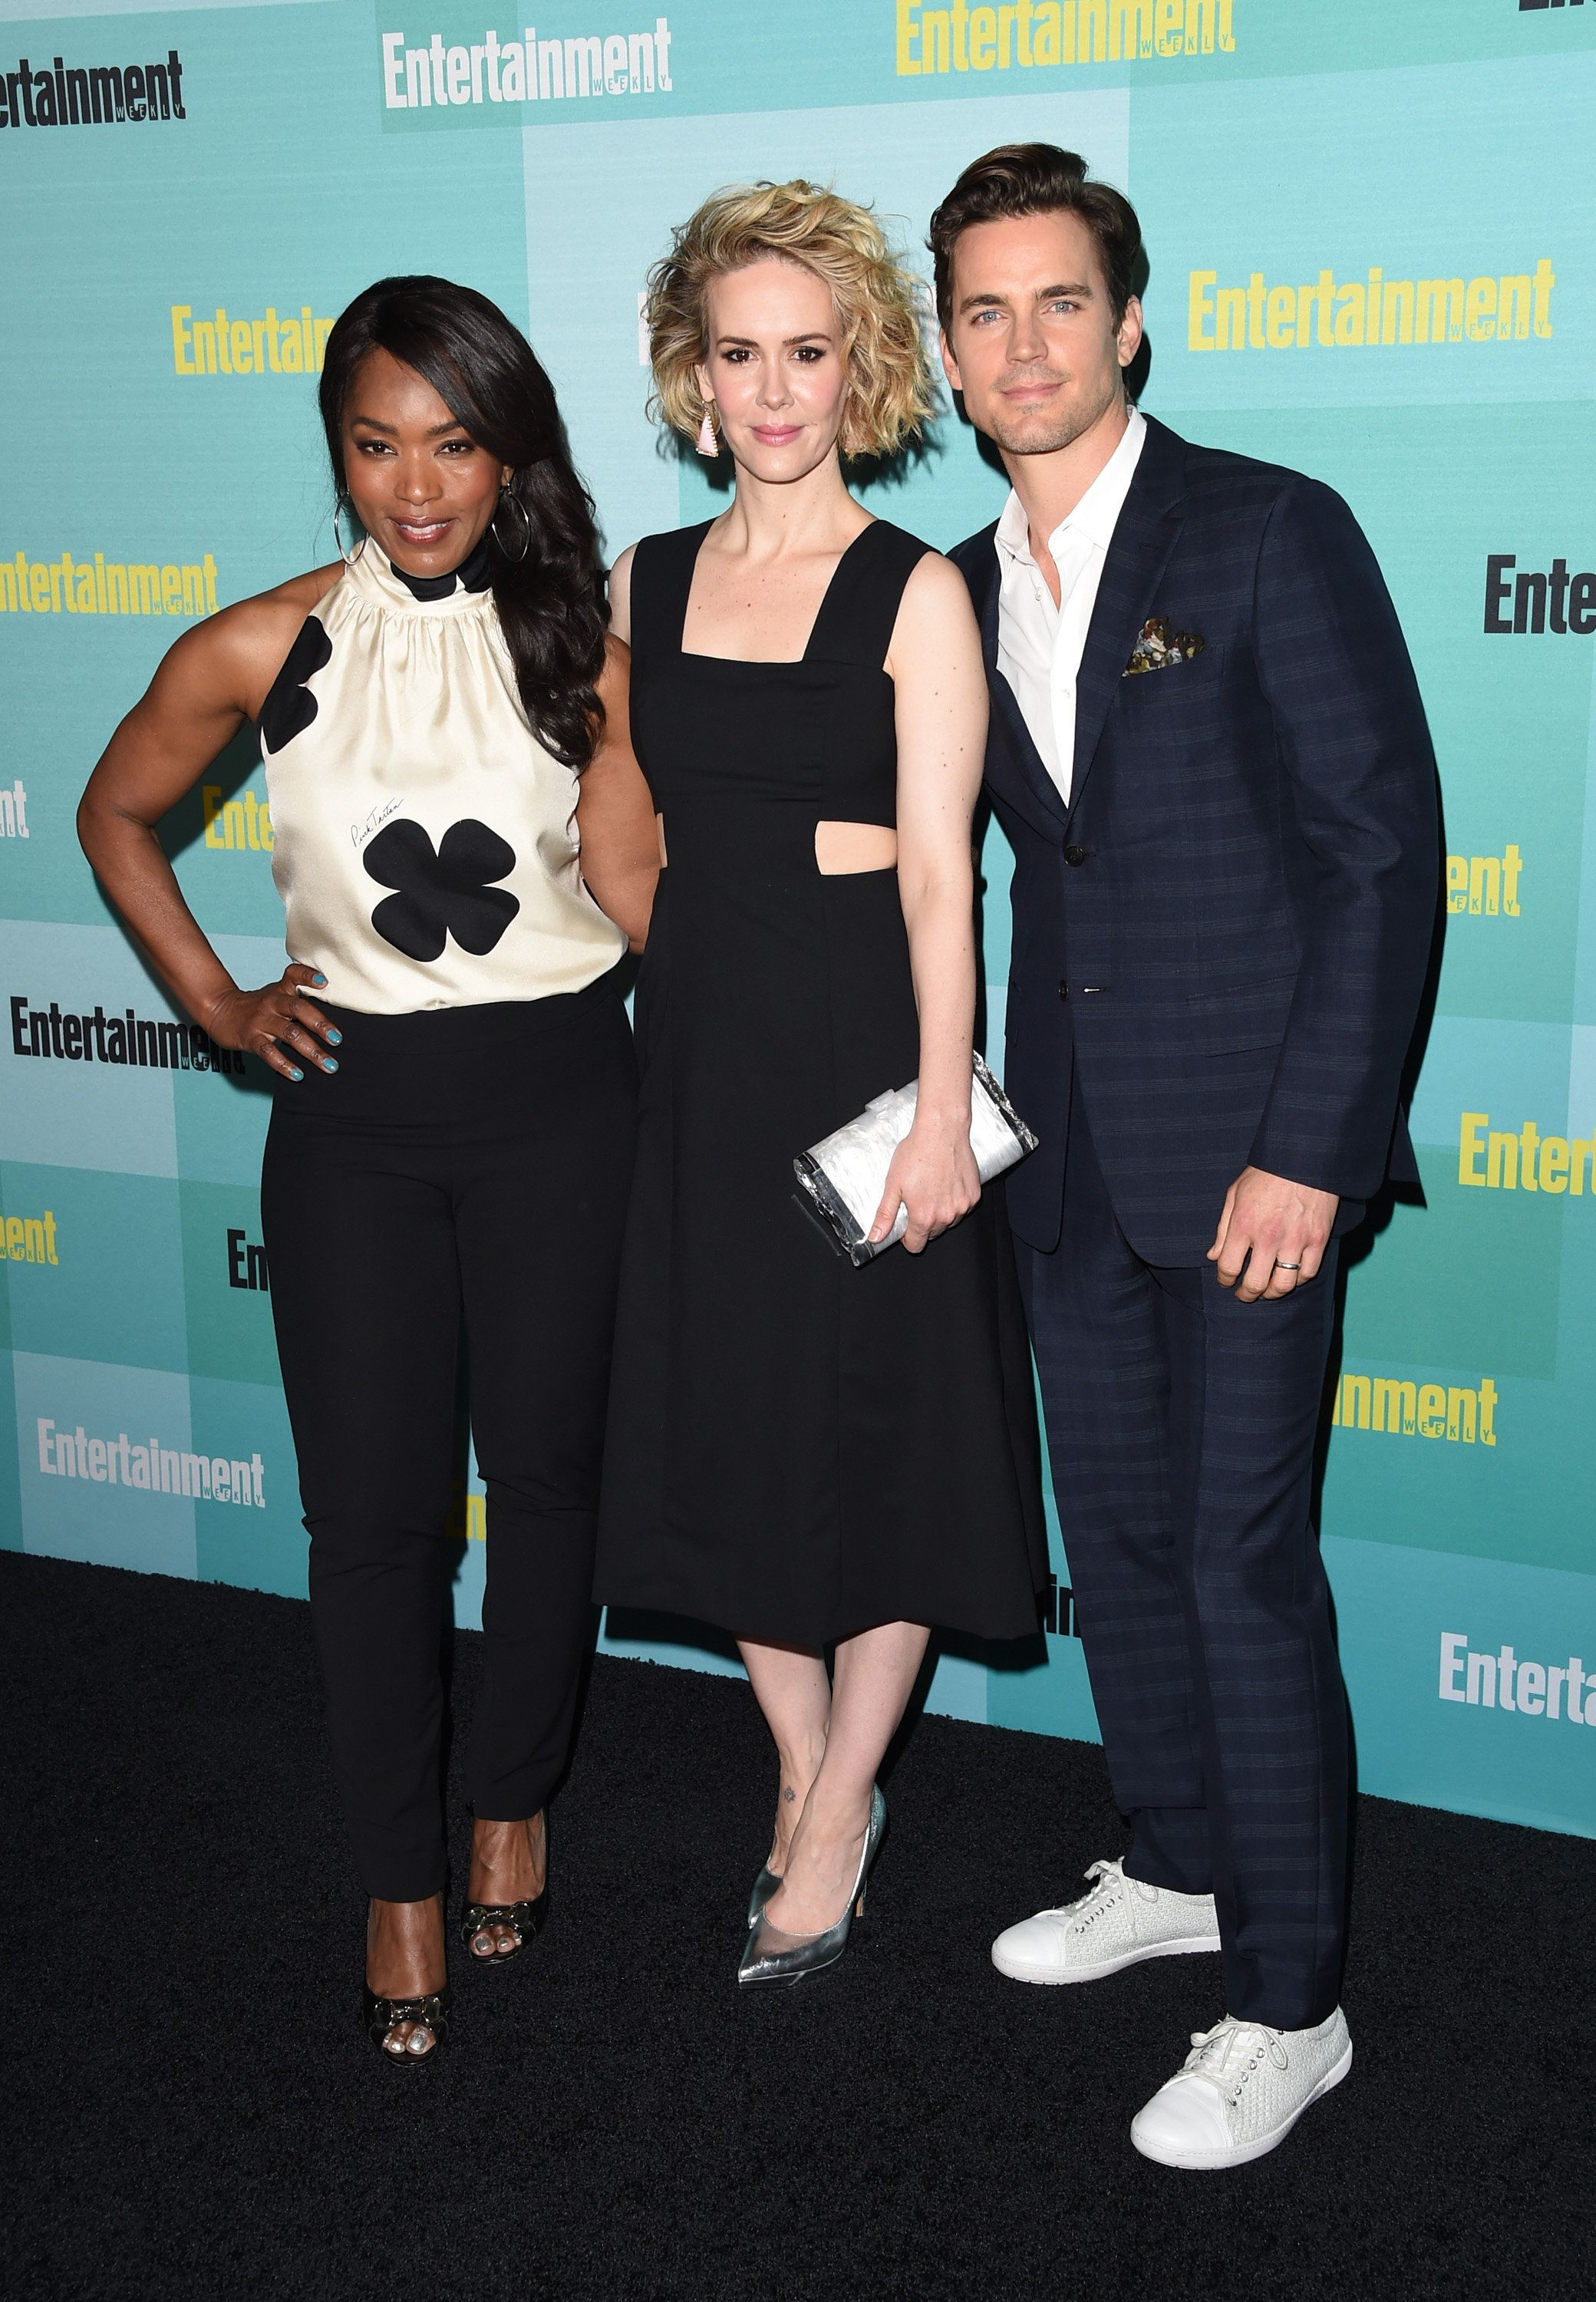 SAN DIEGO, CA - JULY 11:  (L-R) Actors Angela Bassett, Sarah Paulson and Matt Bomer attend Entertainment Weekly's Comic-Con 2